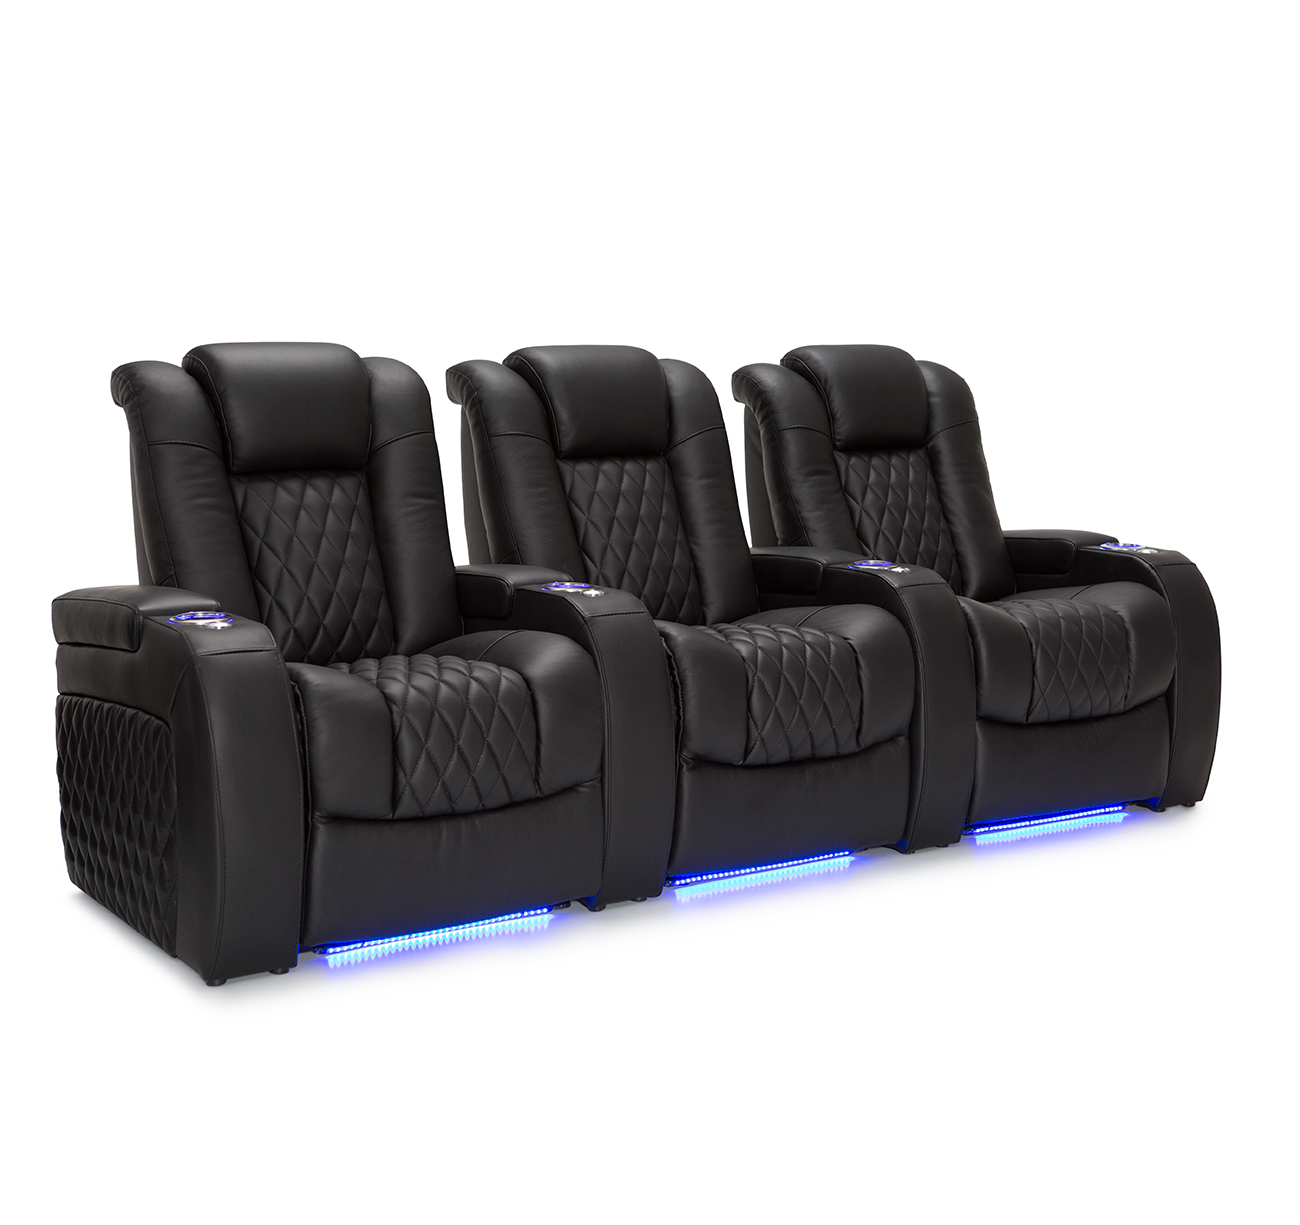 Sofa Bed Home Theater: Movie Theater Sofas Trends In Home Theater Seating Hgtv